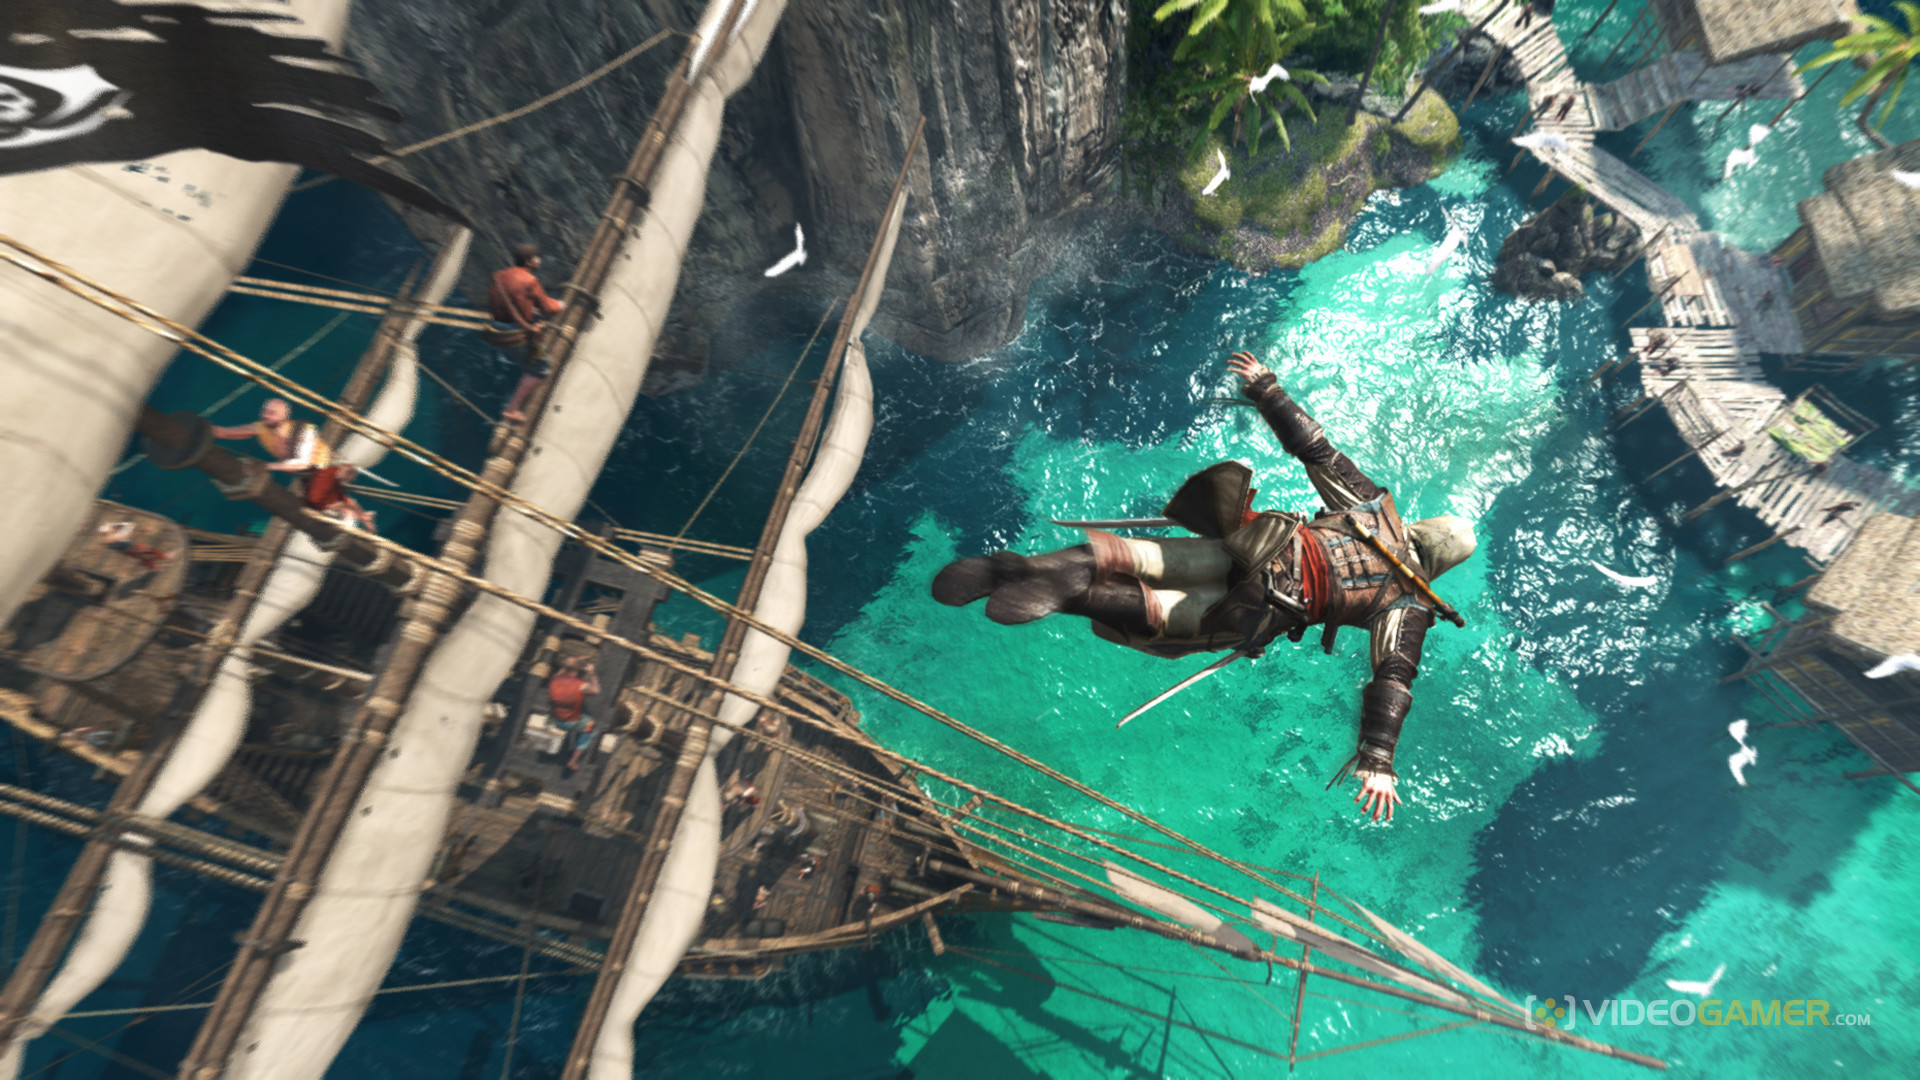 assassins creed 4 black flag 12g assassins creed wiki voltagebd Image collections